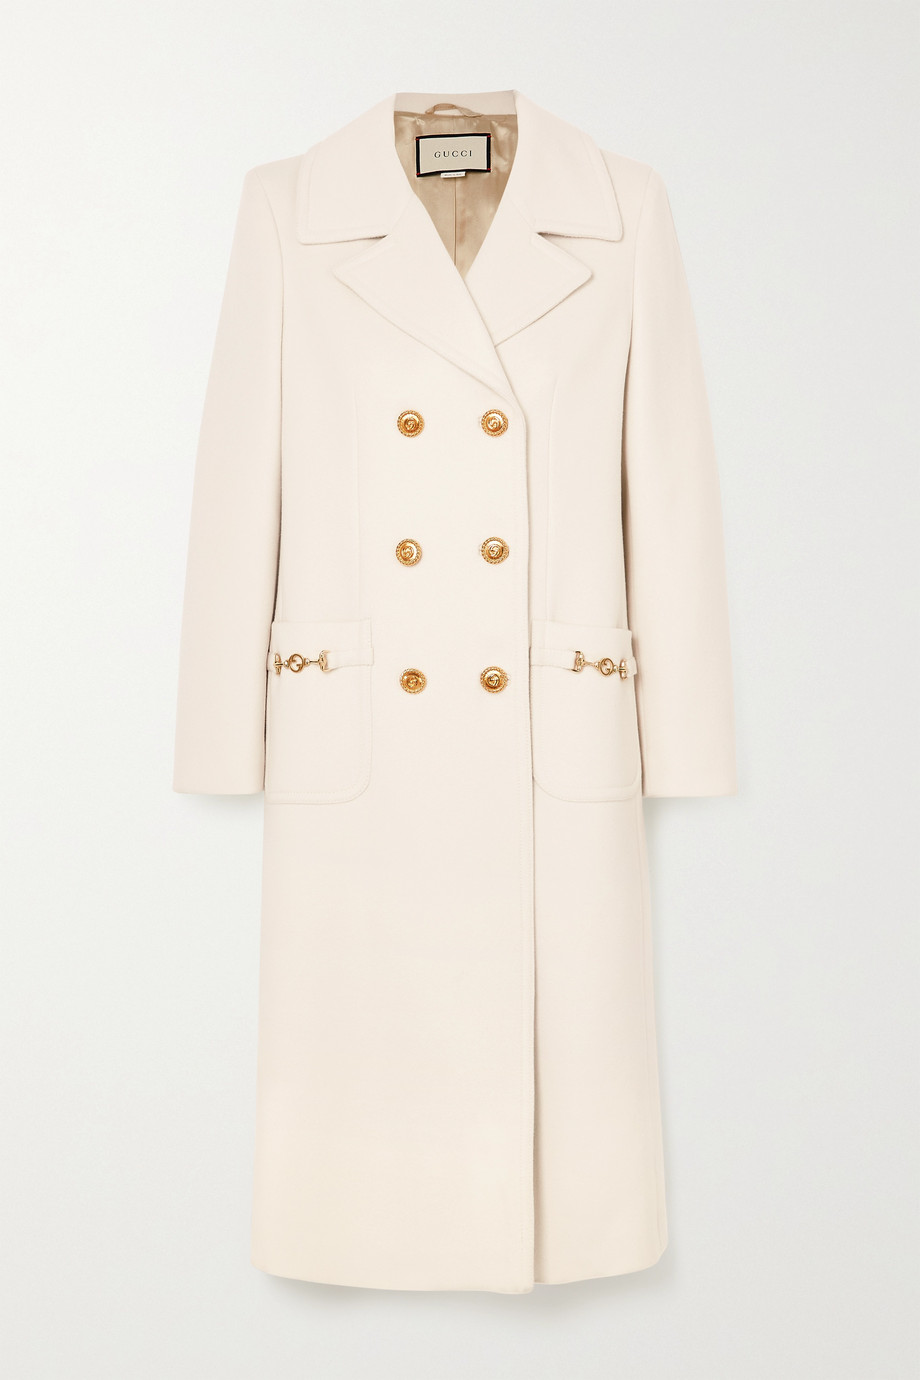 Gucci Horsebit-detailed double-breasted wool-twill coat